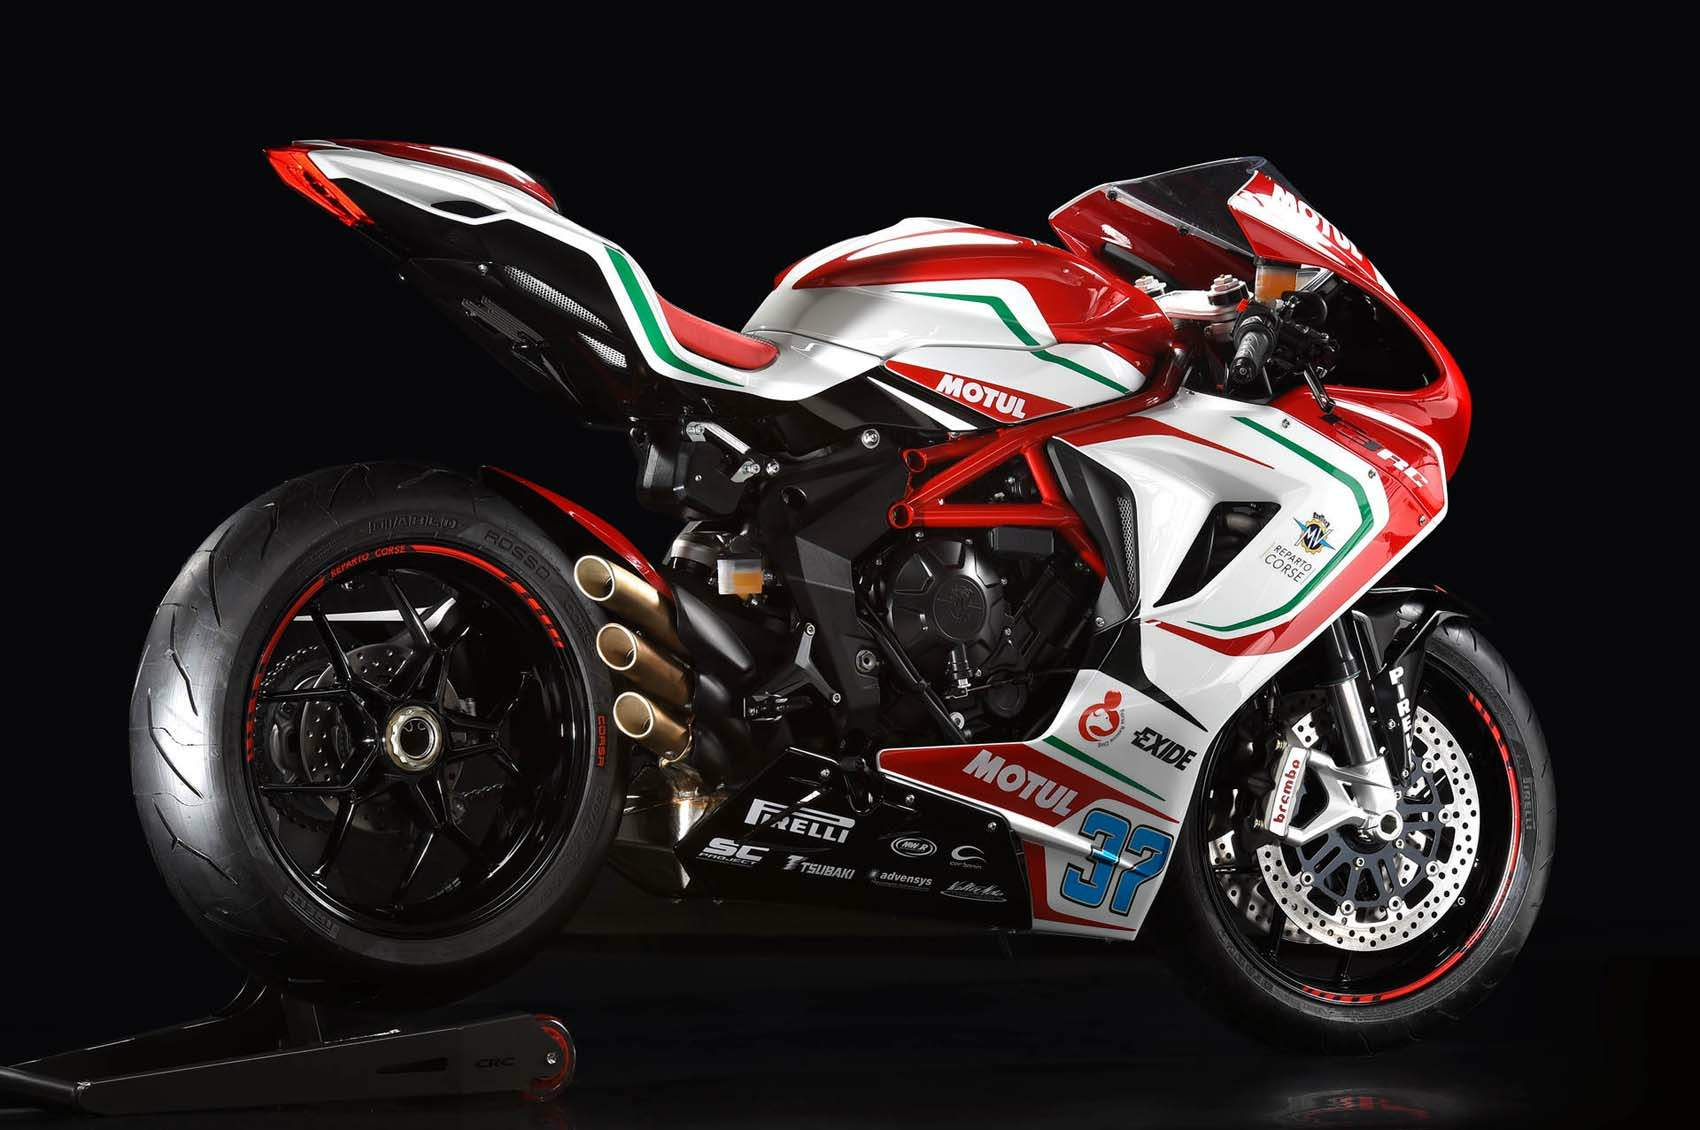 Мотоцикл MV Agusta F3 800 RC Limited Edition 2017